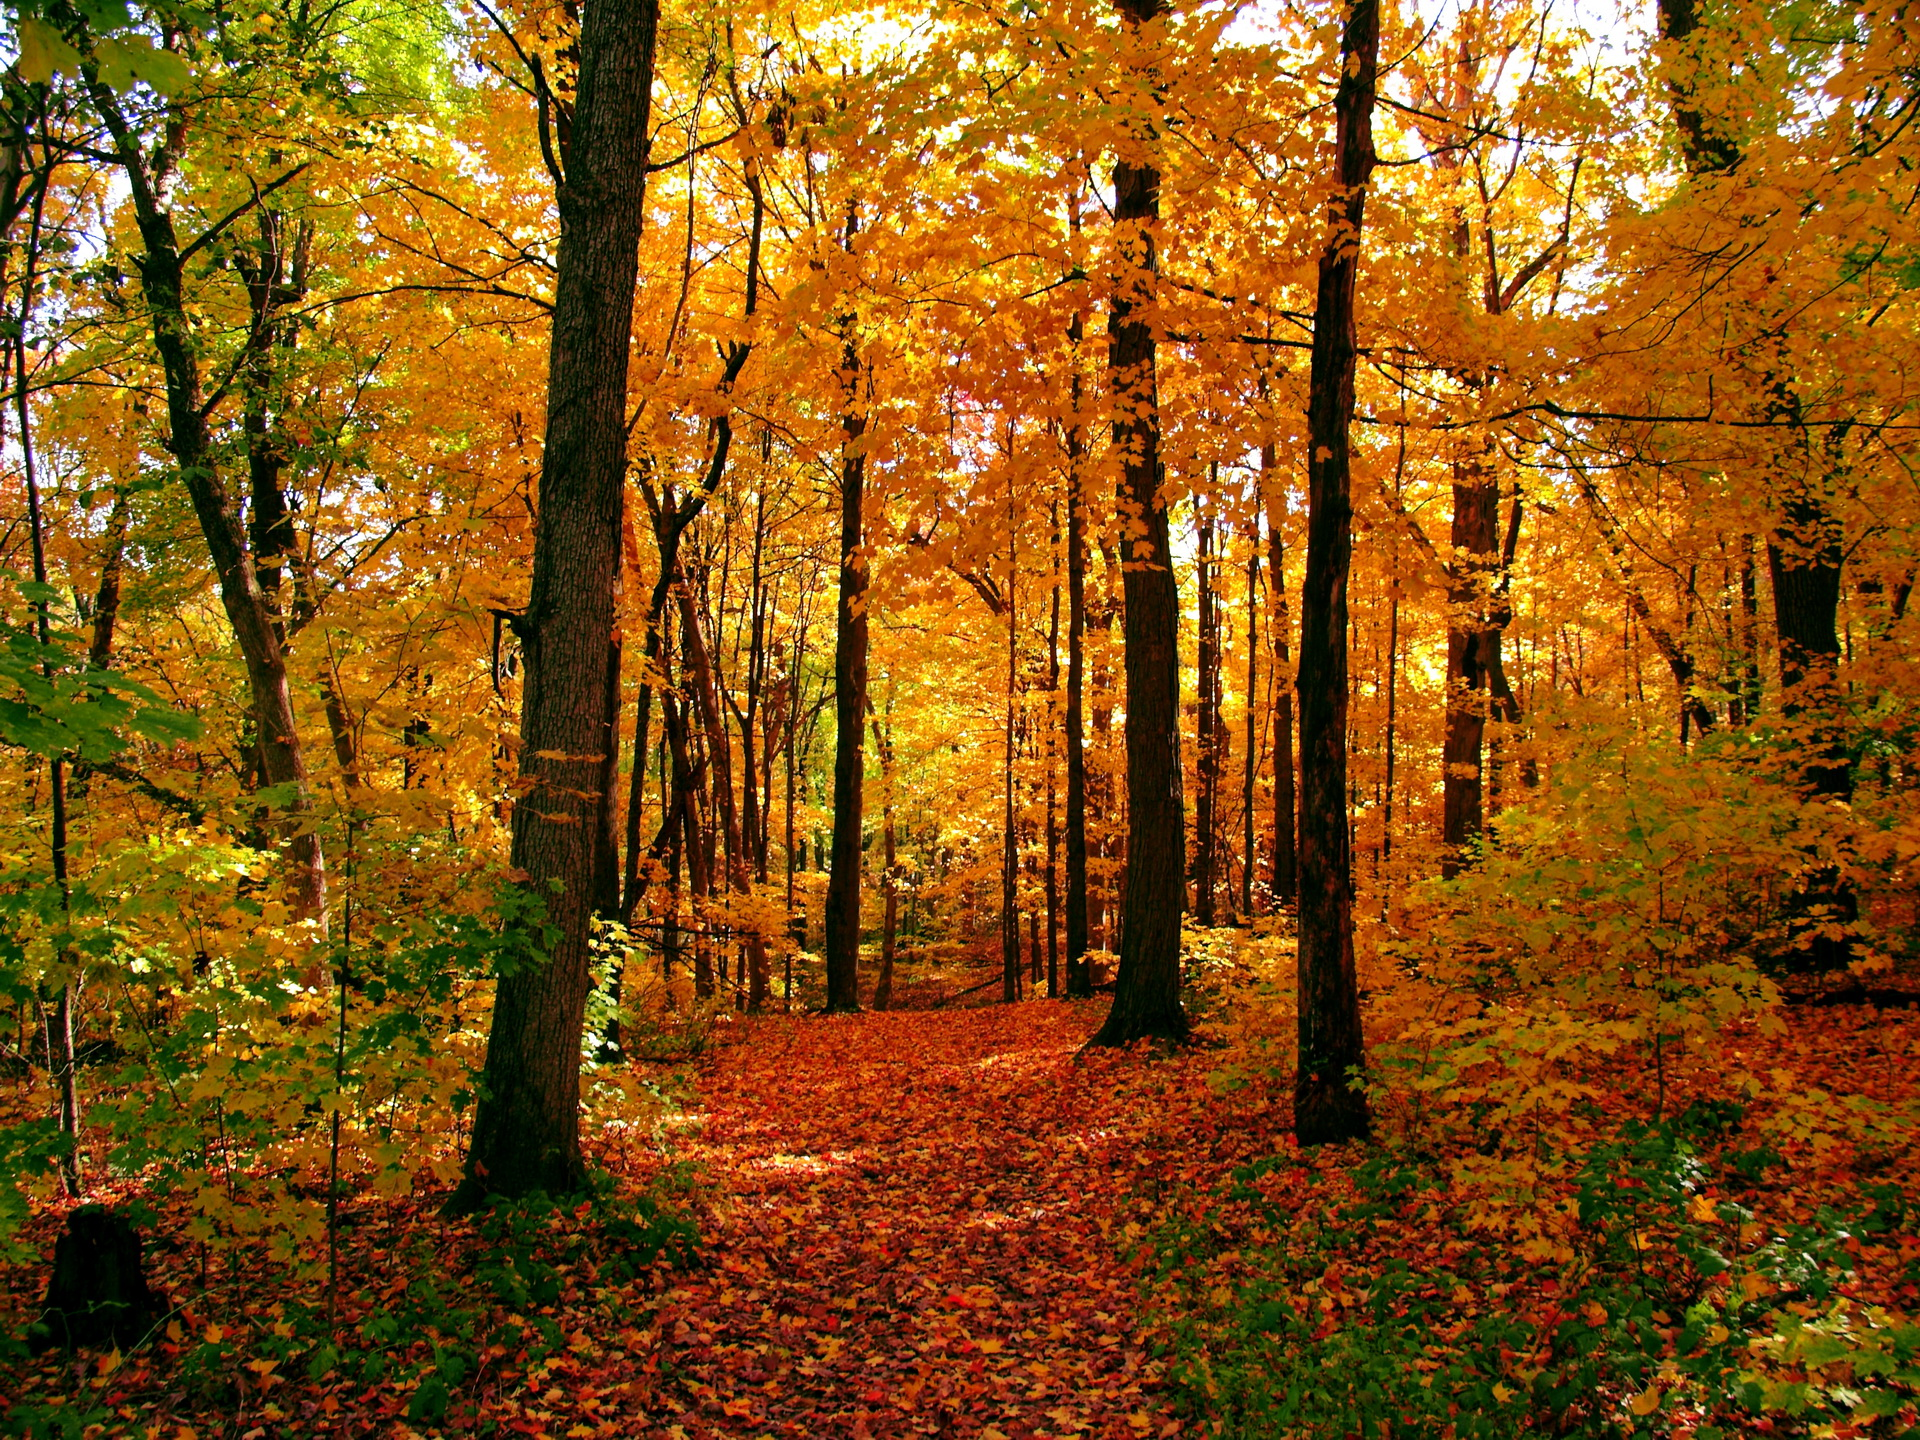 Fall Leaves Pathway Computer Wallpaper Autumn Colors By Brian L Desktop Wallpaper